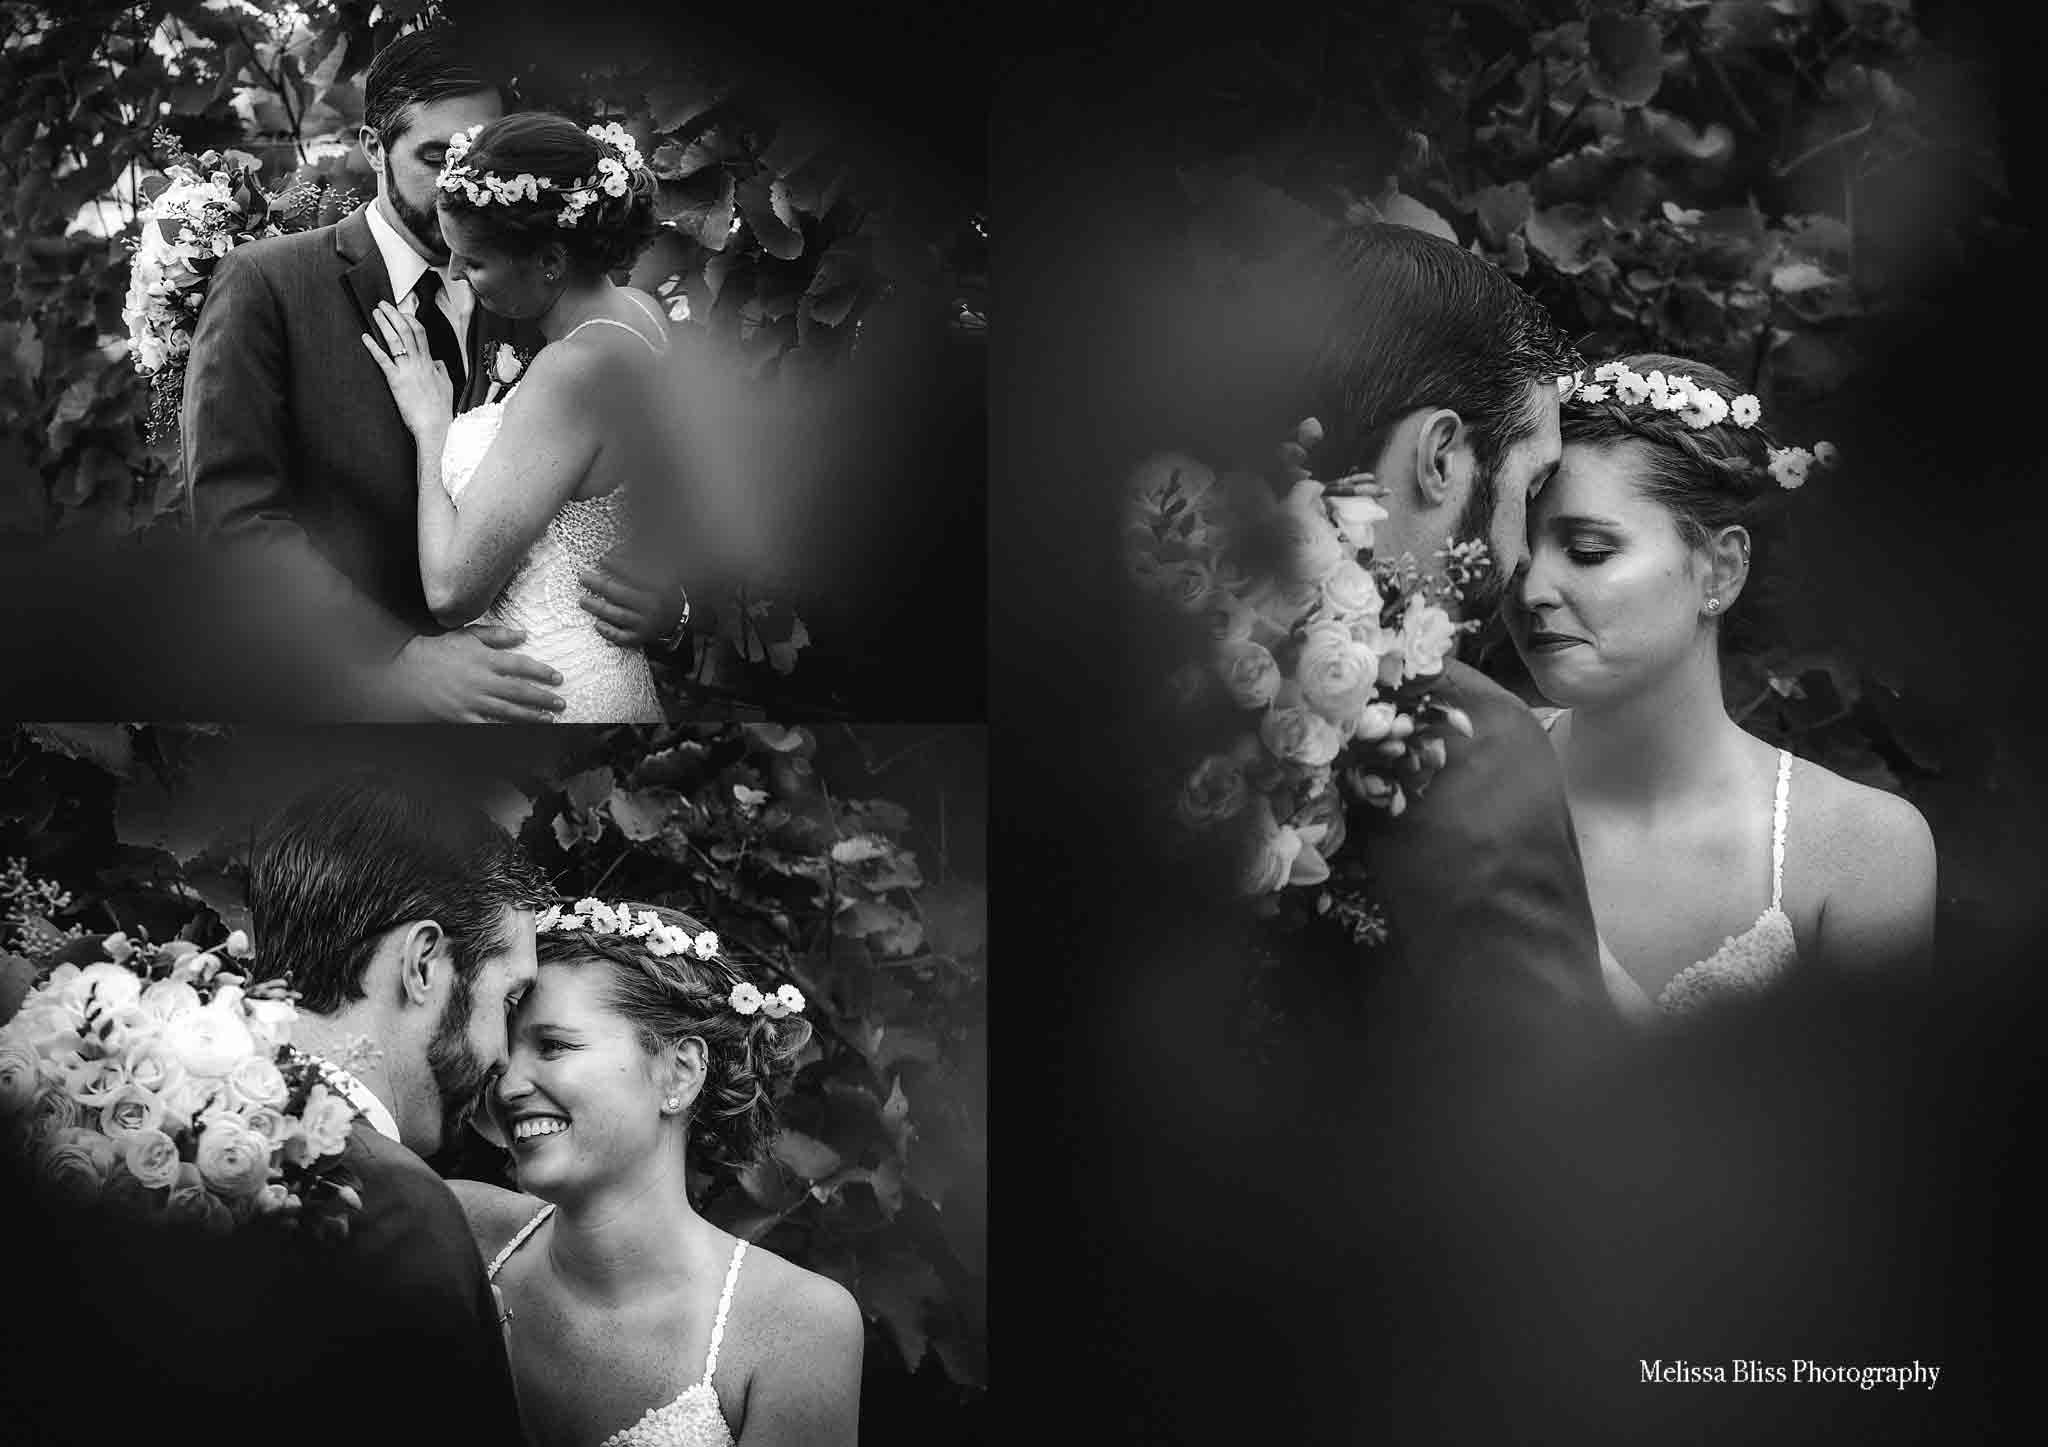 creative-wedding-portraits-veritas-winery-wedding-melissa-bliss-photography-norfolk-portsmouth-richmond-charlottesville-wedding-photographer.jpg